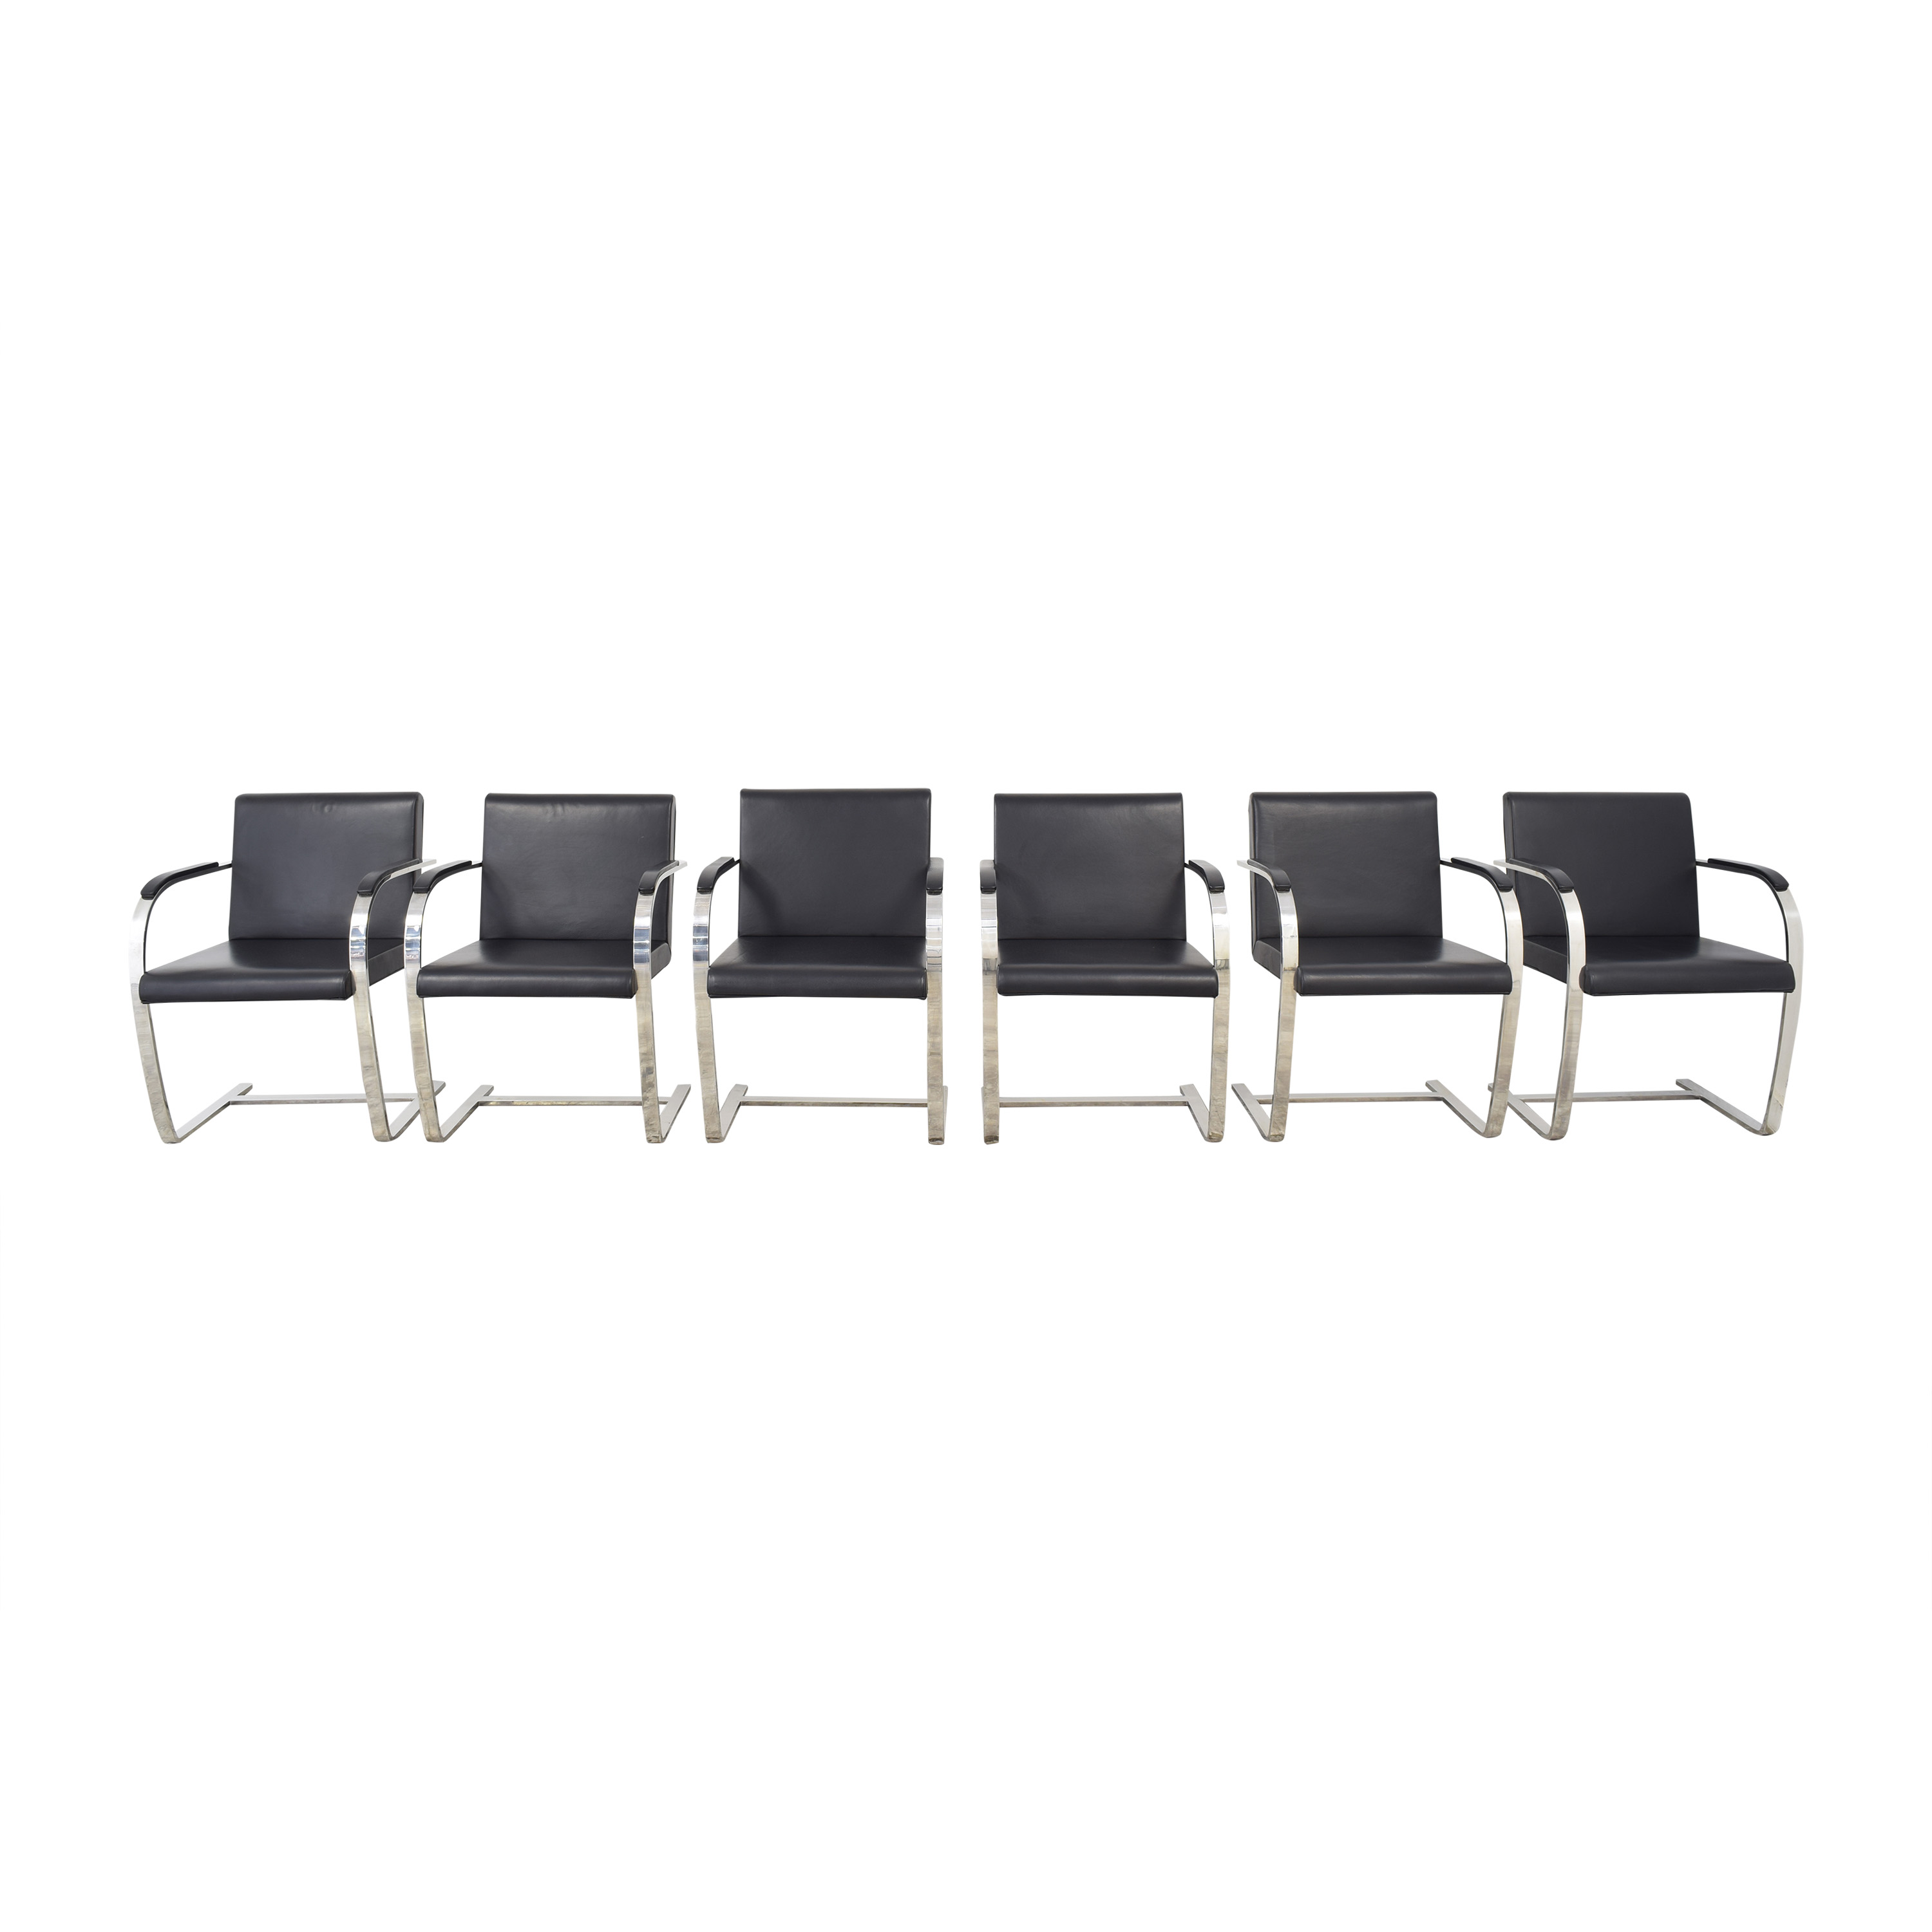 France and Son France & Son Ludwig Cantilevered Armchairs pa